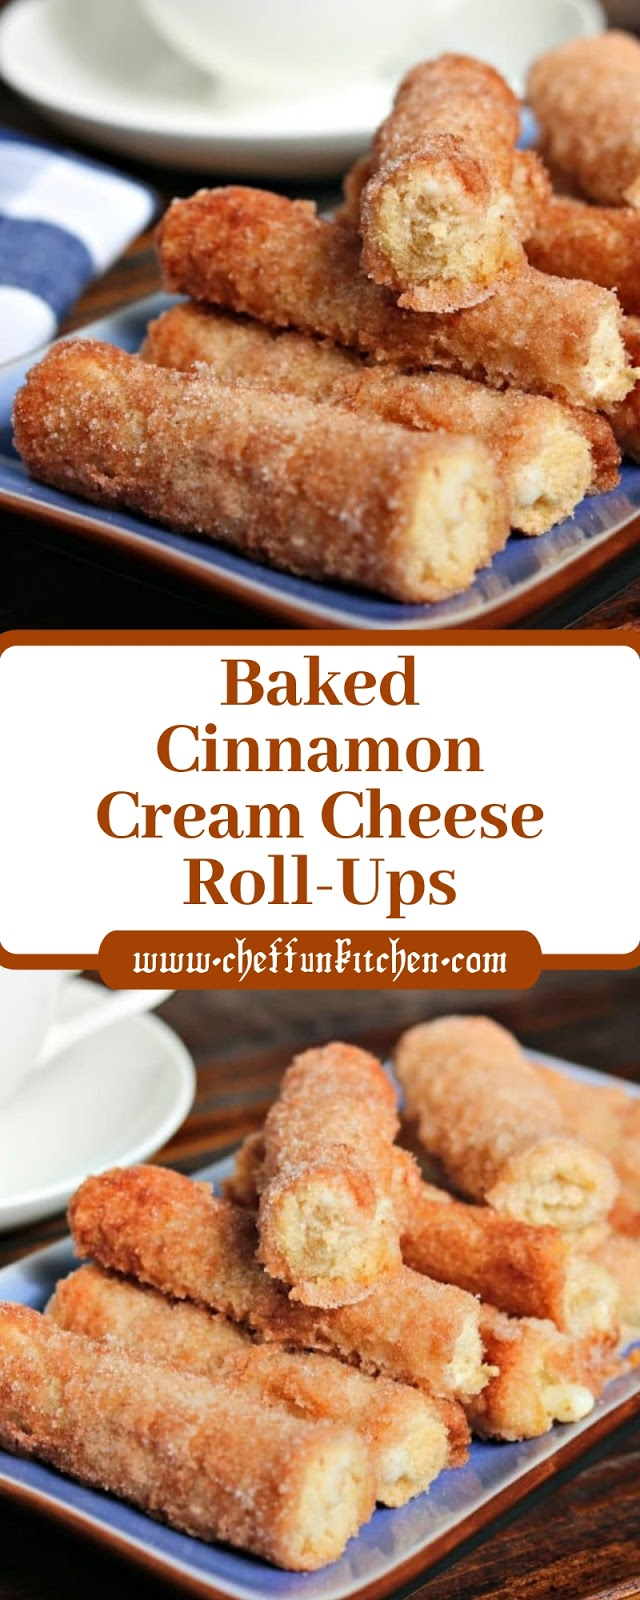 Baked Cinnamon Cream Cheese Roll-Ups